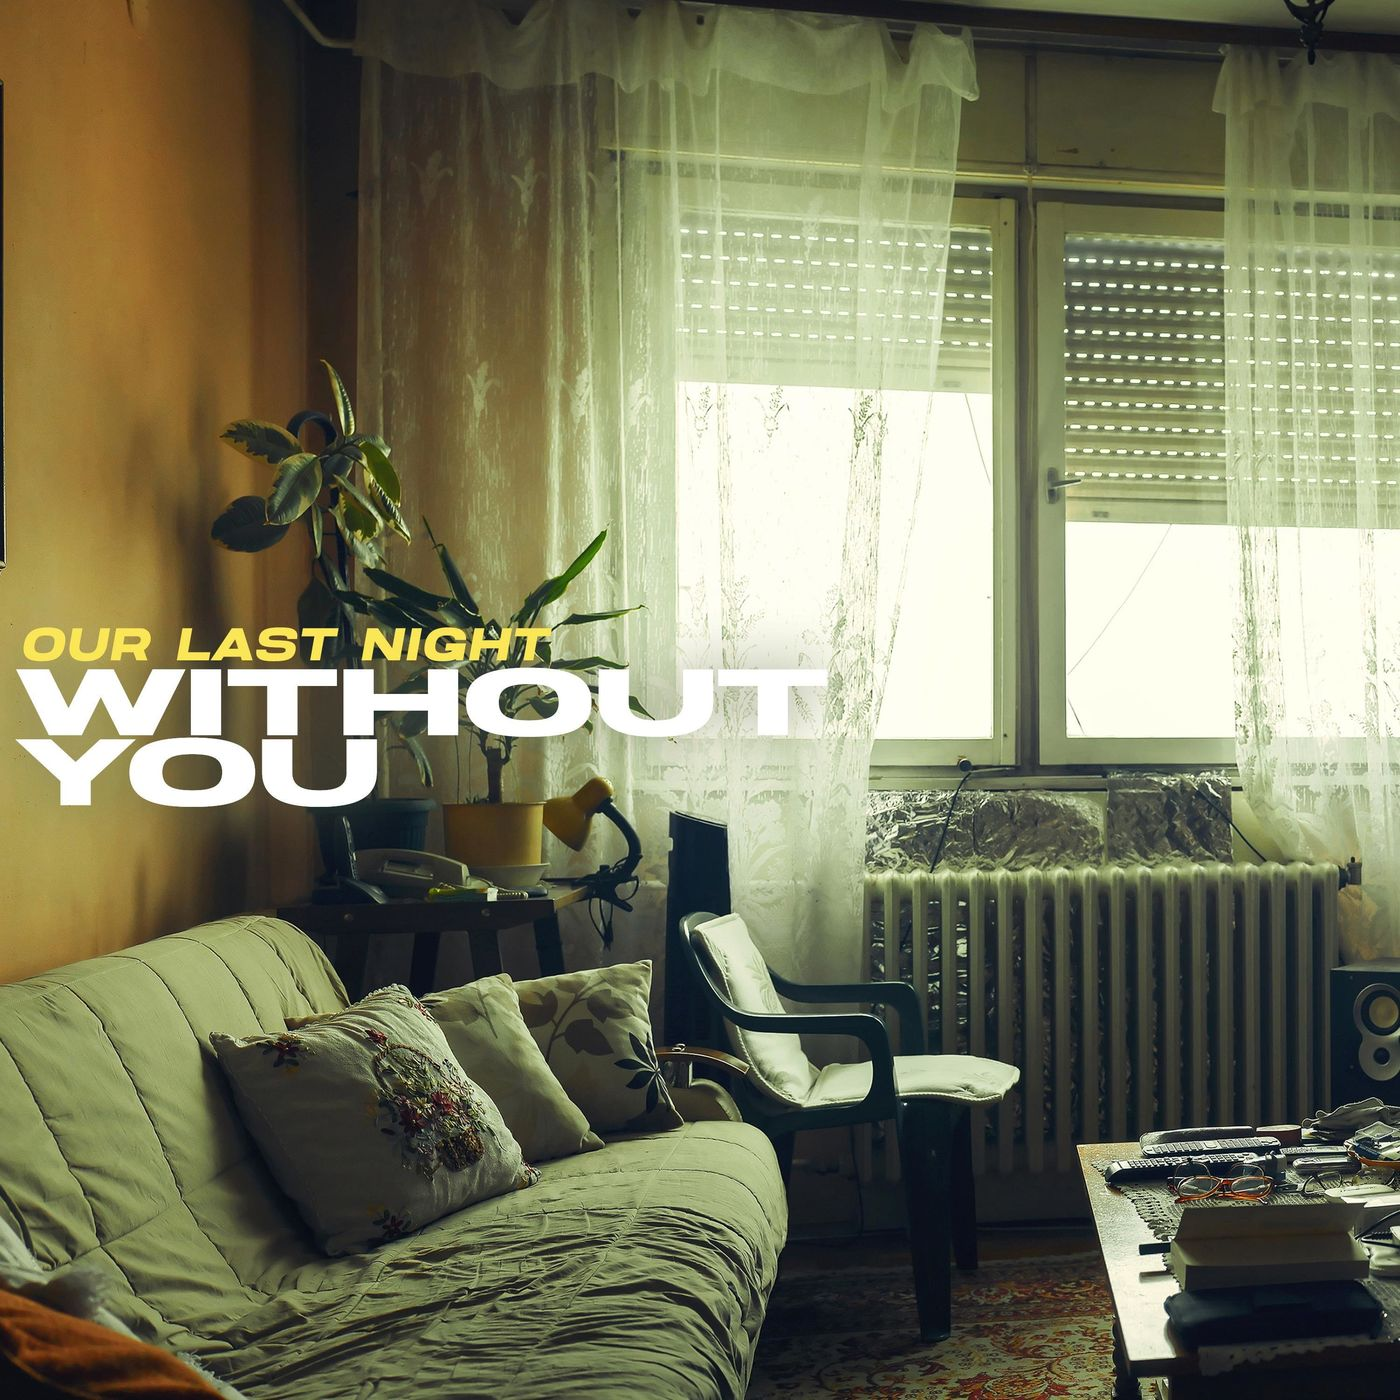 Our Last Night - WITHOUT YOU [single] (2021)